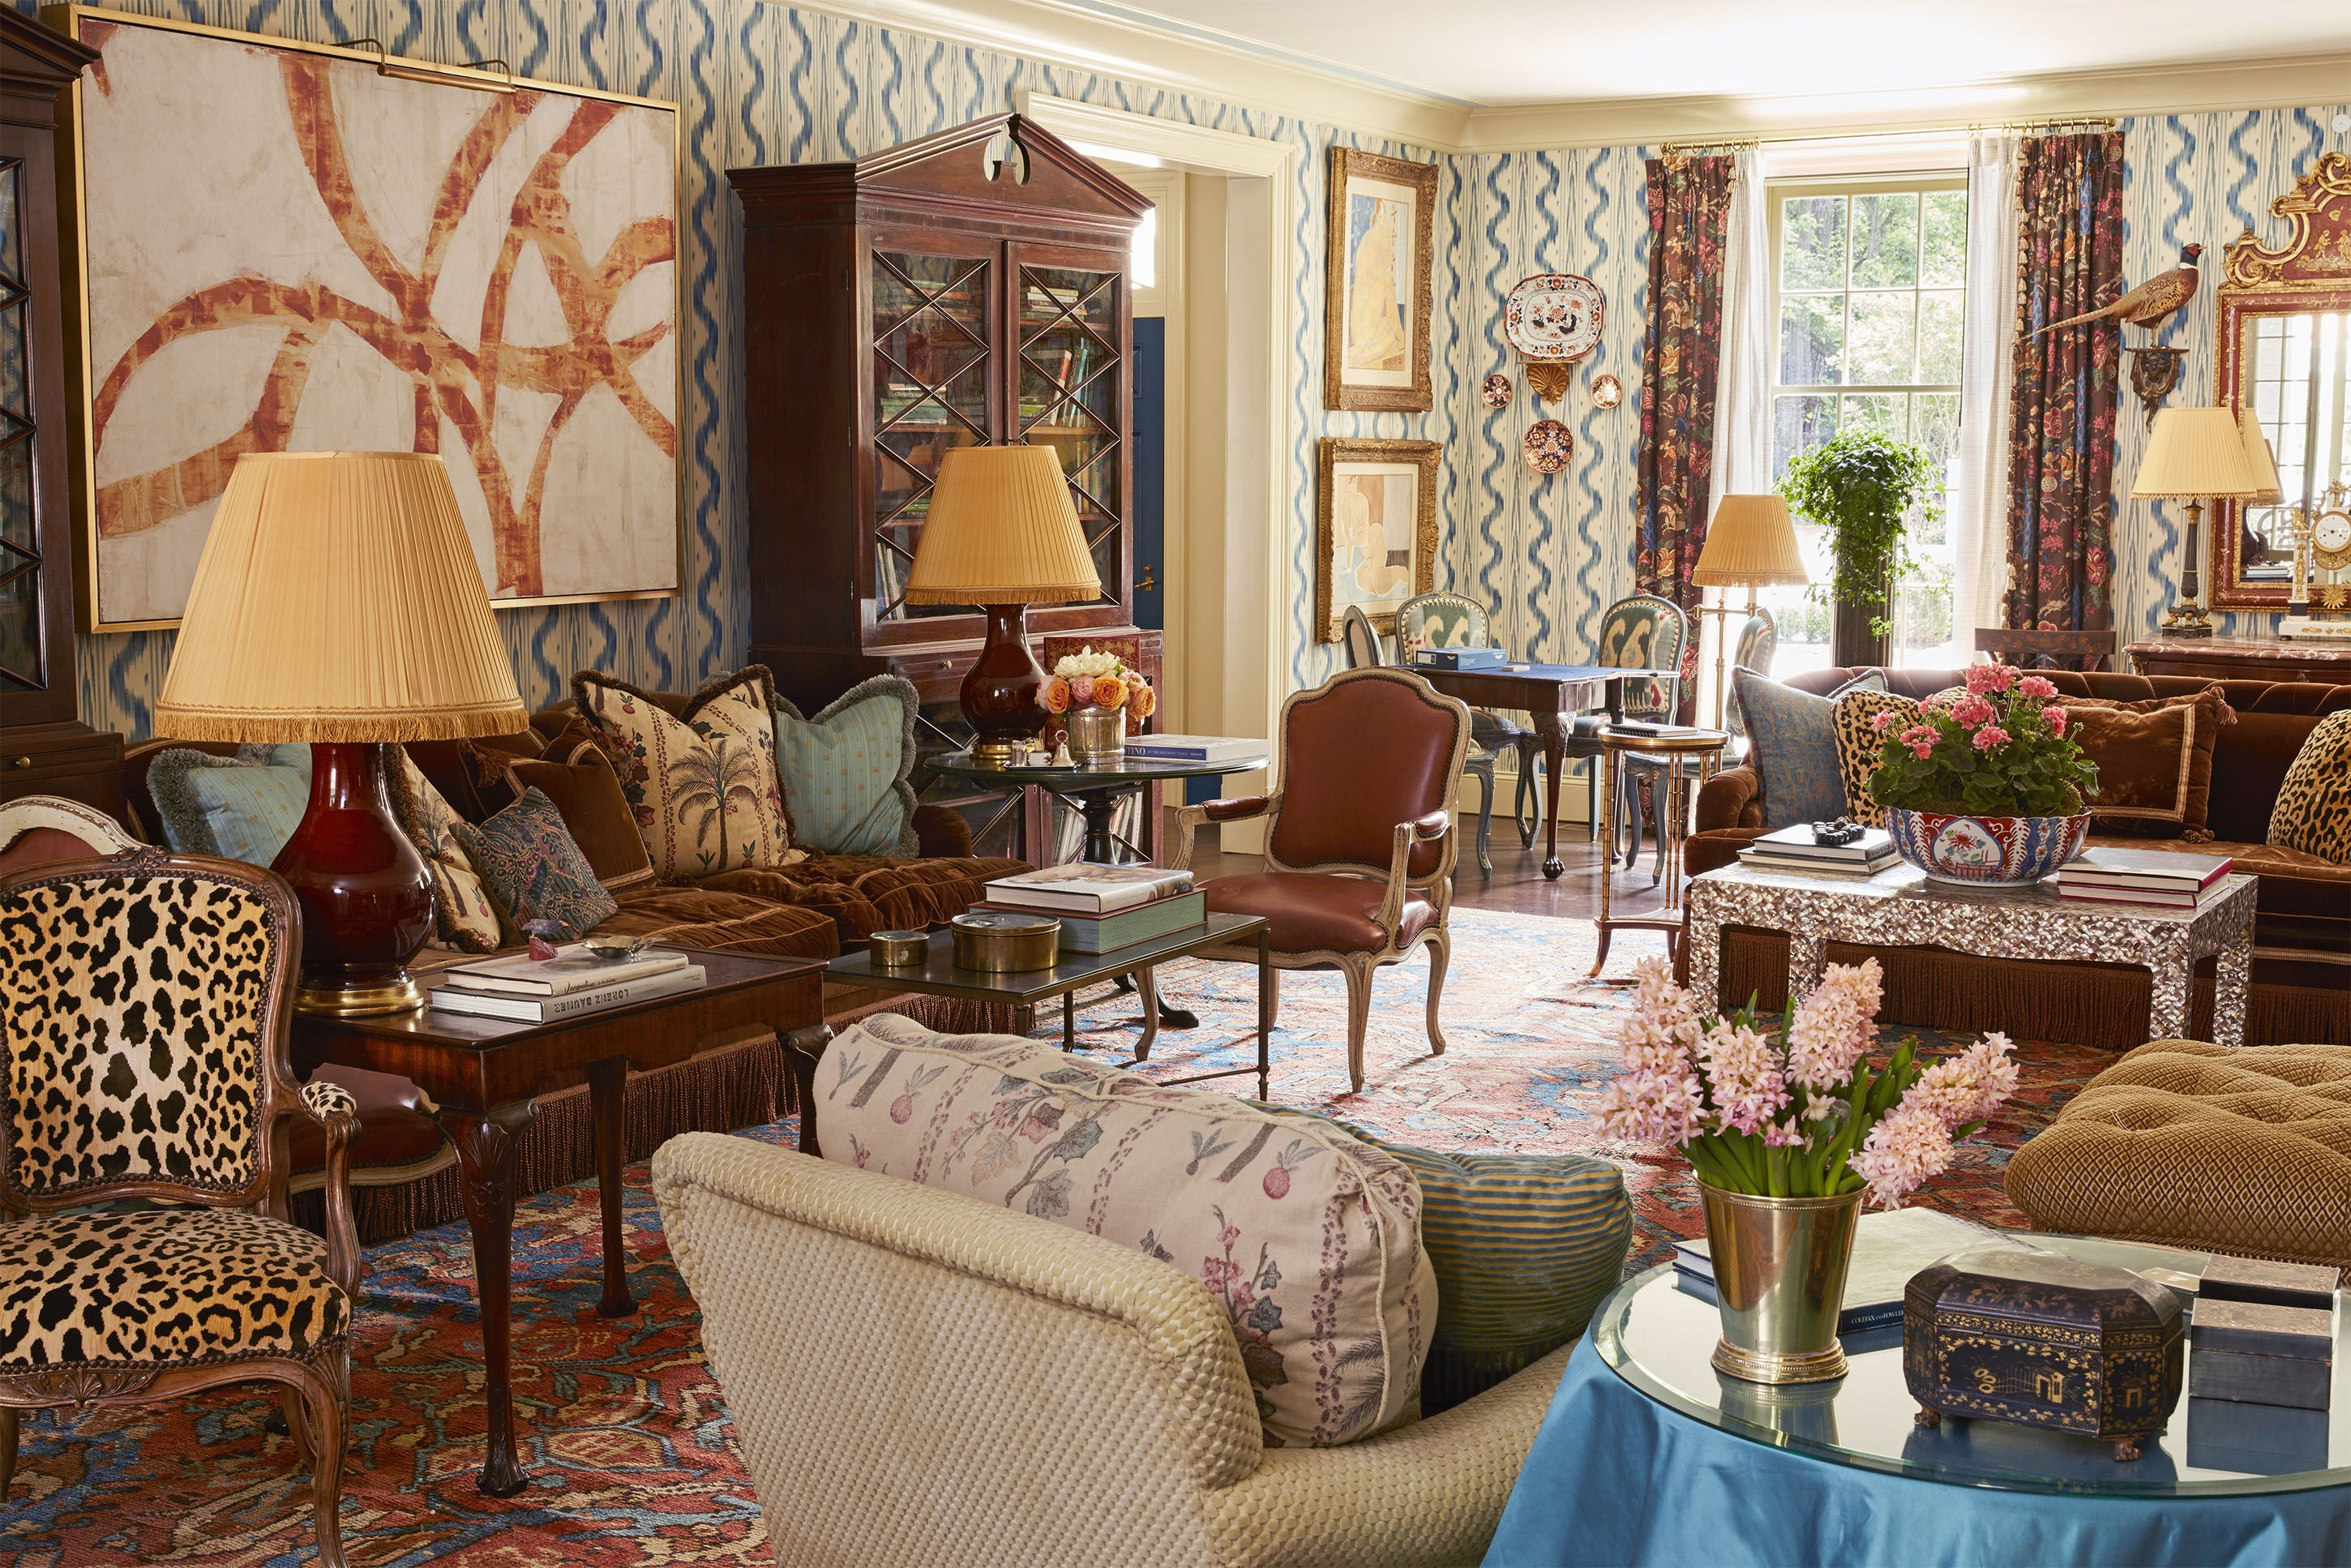 HOUSE TOUR: Step Inside The Playful Home Of A Glamorous Atlanta Tastemaker